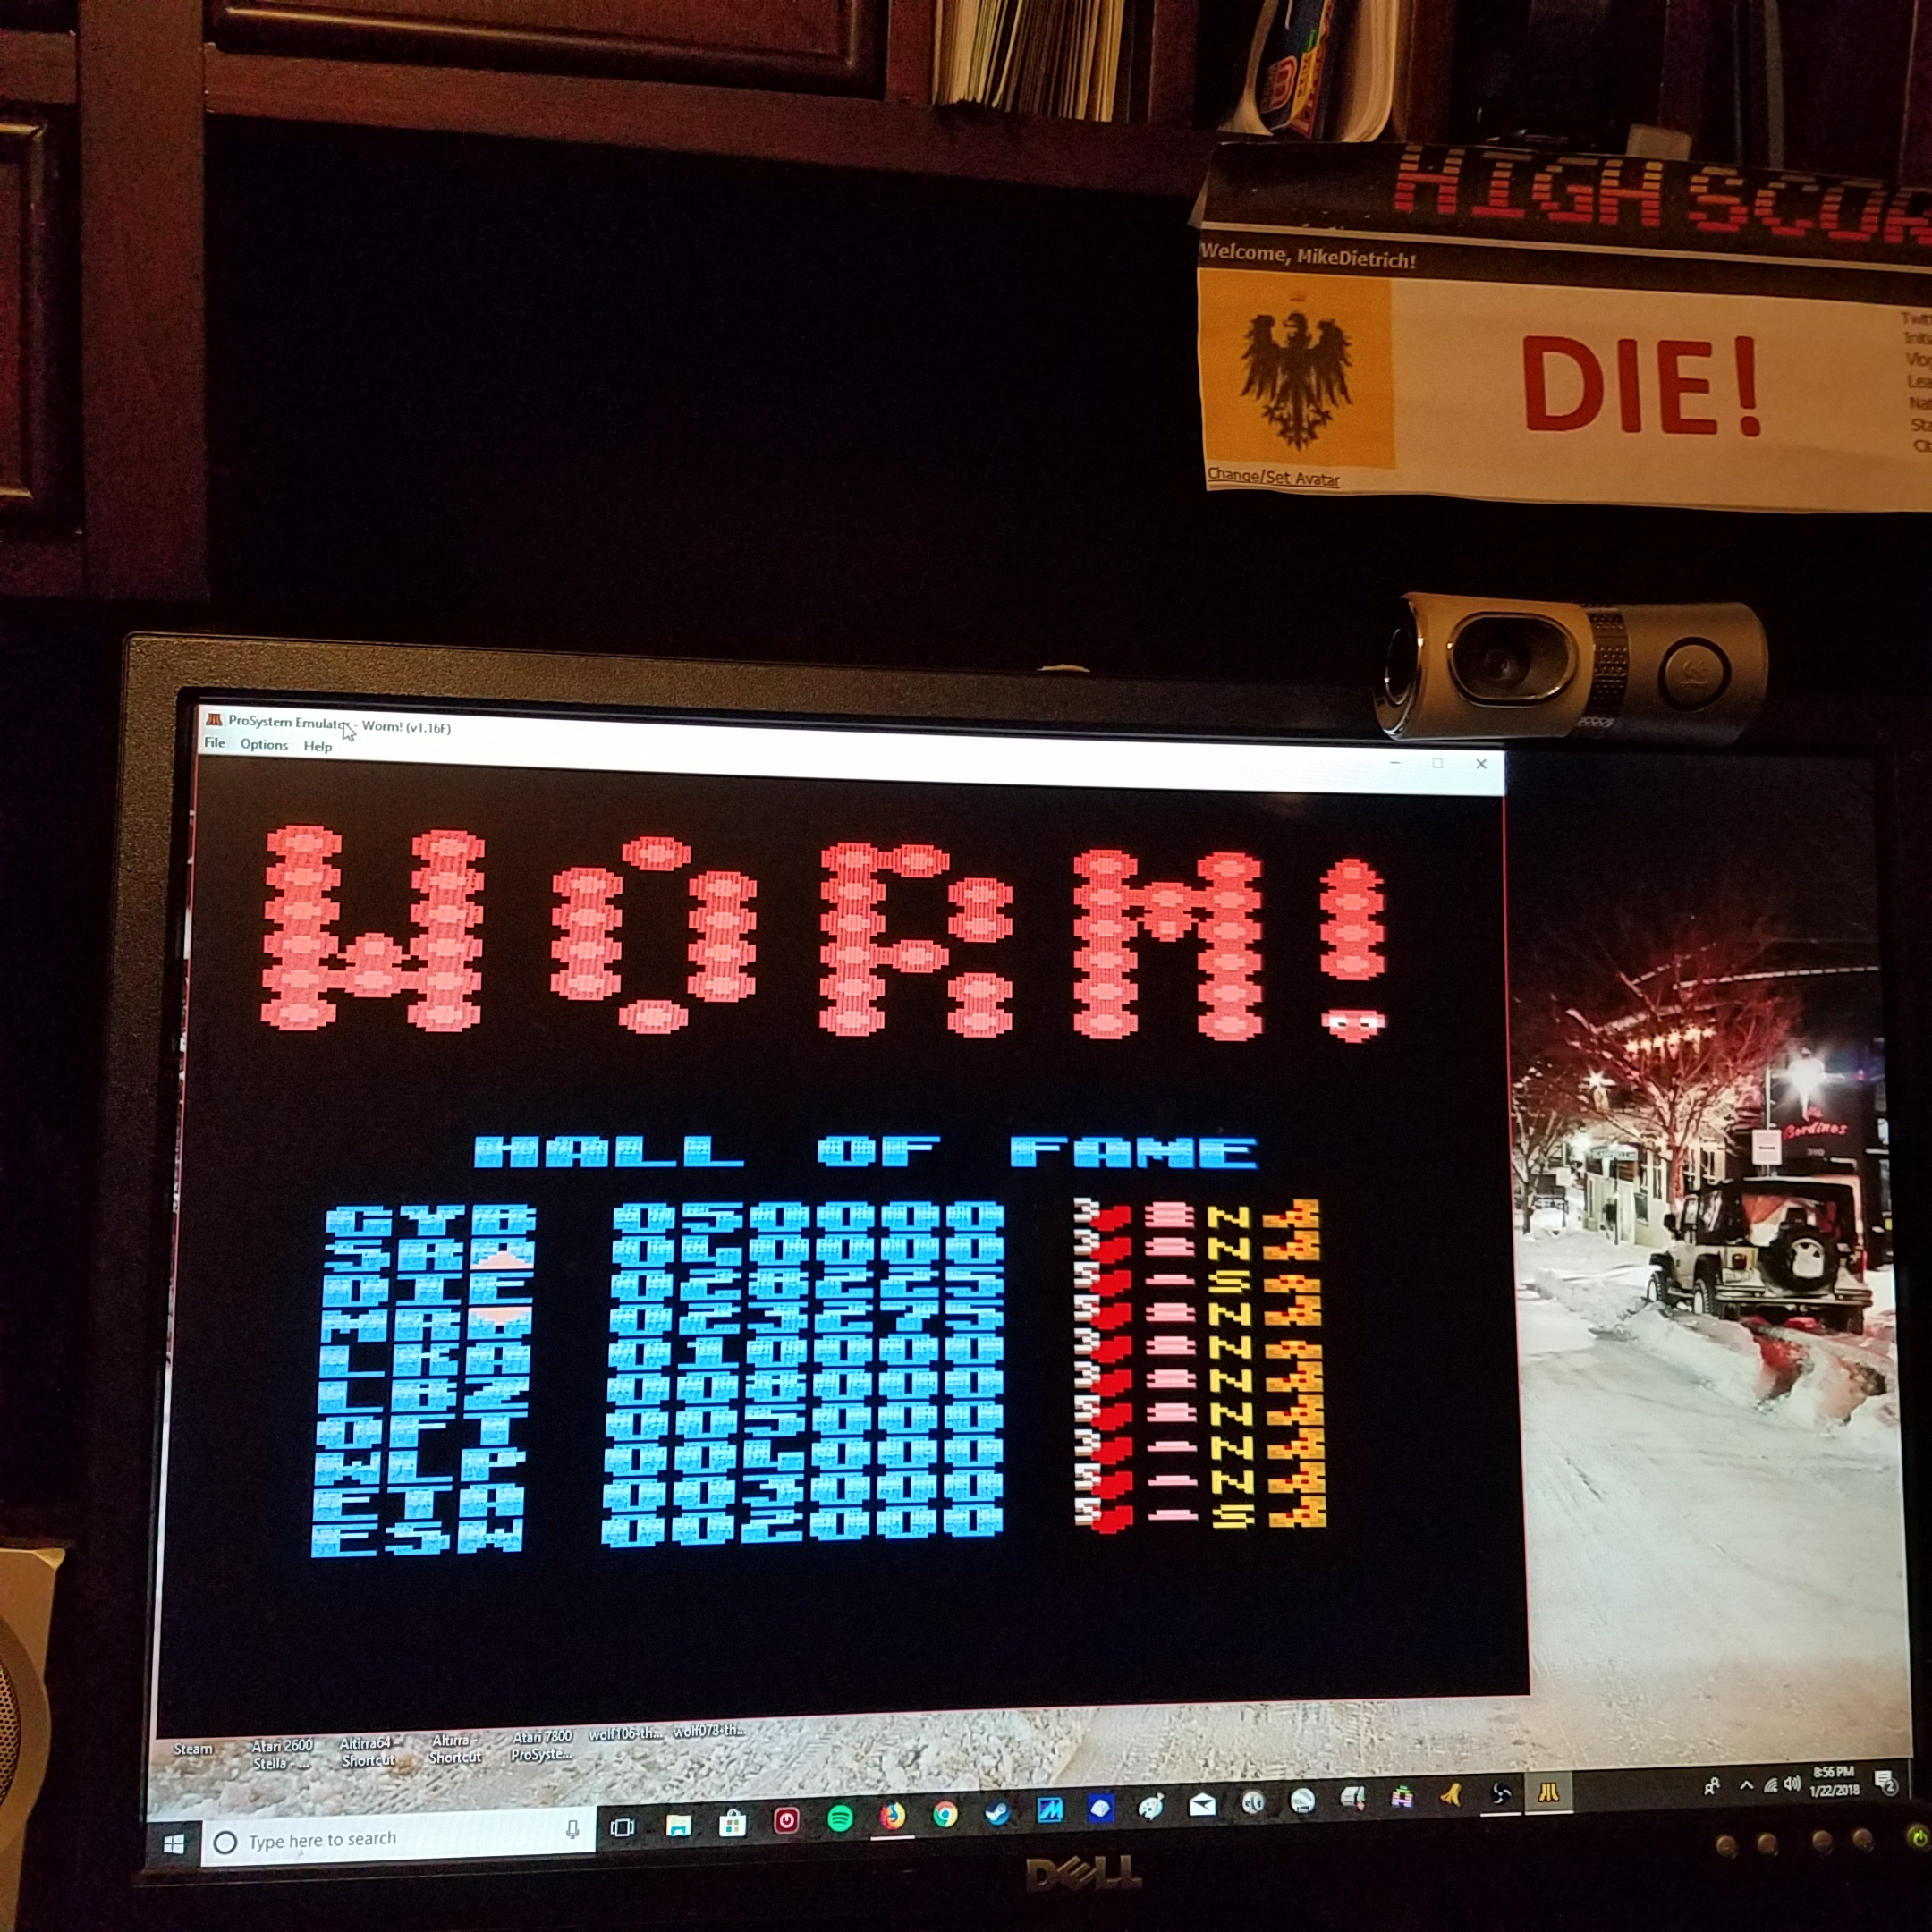 MikeDietrich: Worm! [Slow/Short Body/Some] (Atari 7800 Emulated) 28,225 points on 2018-01-22 21:00:19